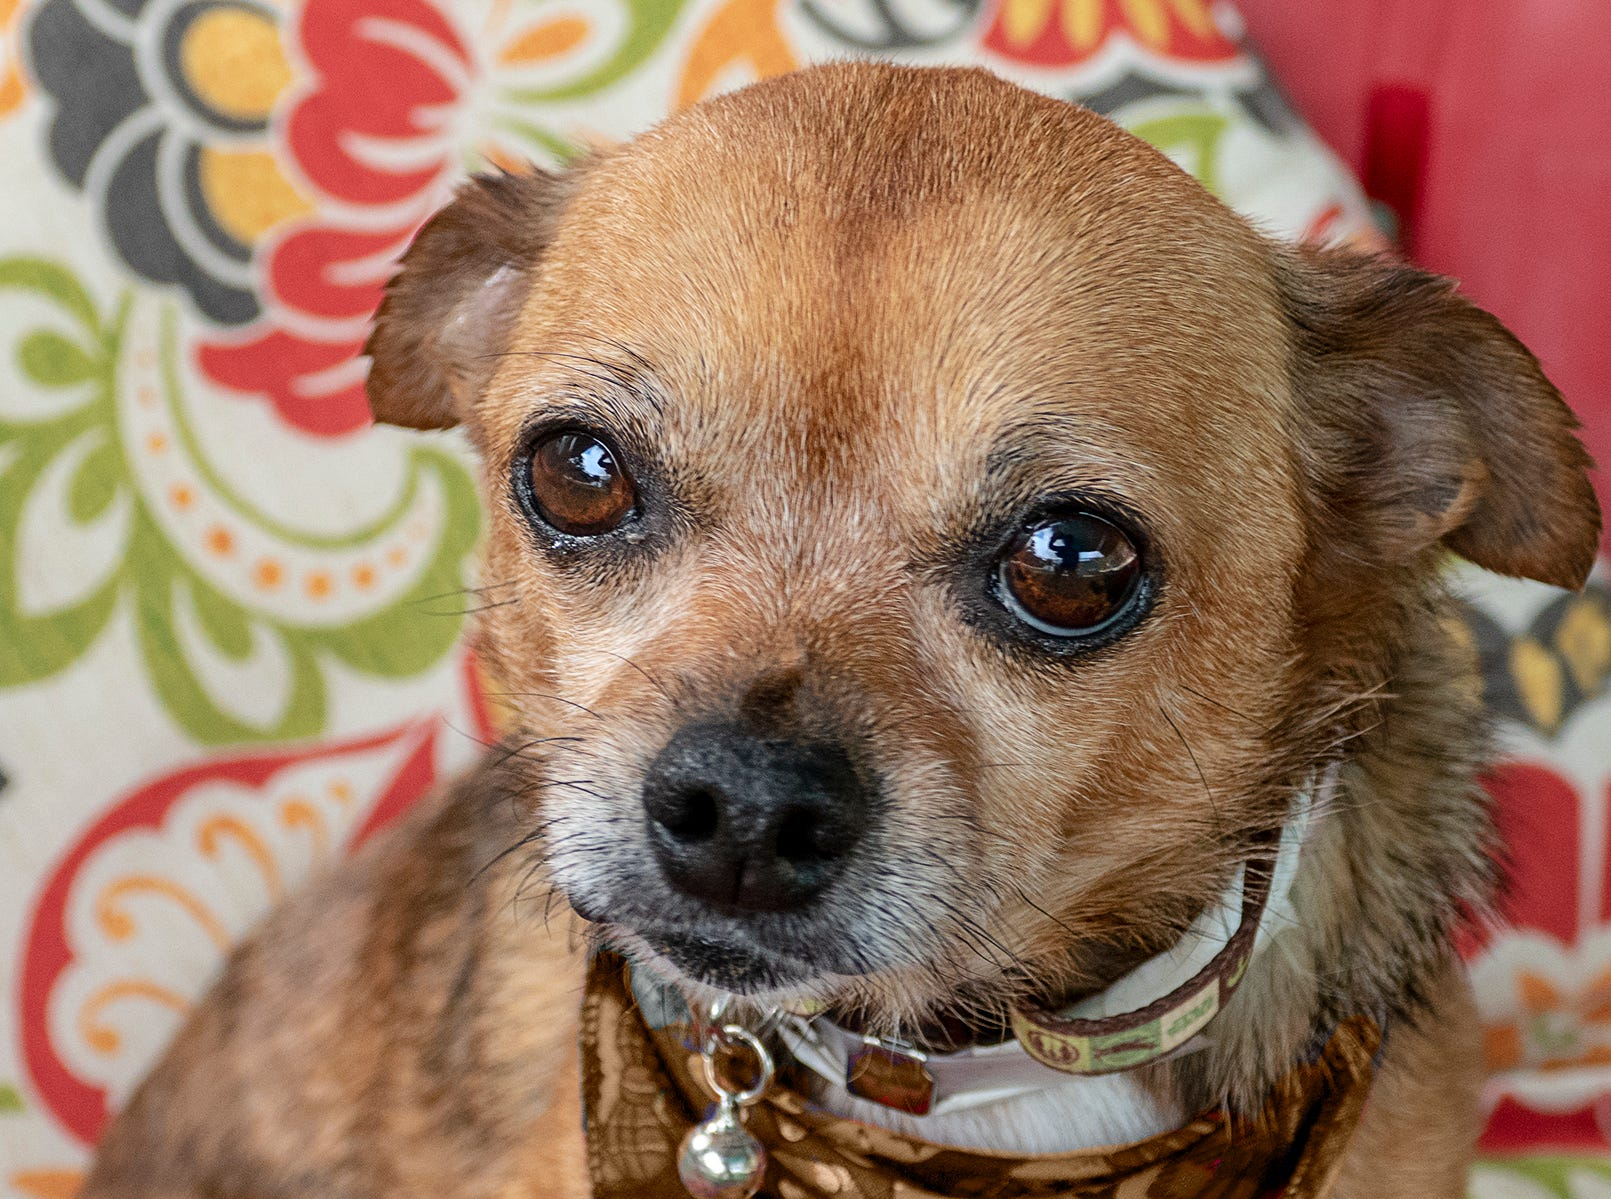 Senior Chihuahua Gizmo, age 12, is all around perfection with the many visitors to the care center. He does beautifully with noises of all sorts and is very friendly with kids who are excited to make his acquaintance!He is a lovely combination of spunky when out for a walk but loves lap time, too.To adopt Gizmo request A5214520. The Agoura Hills Animal Care Center is at 29525 Agoura Road, Agoura Hills. Occasionally pets have already been adopted. To check availability, call 818-991-0071 or visit animalcare.lacounty.gov.